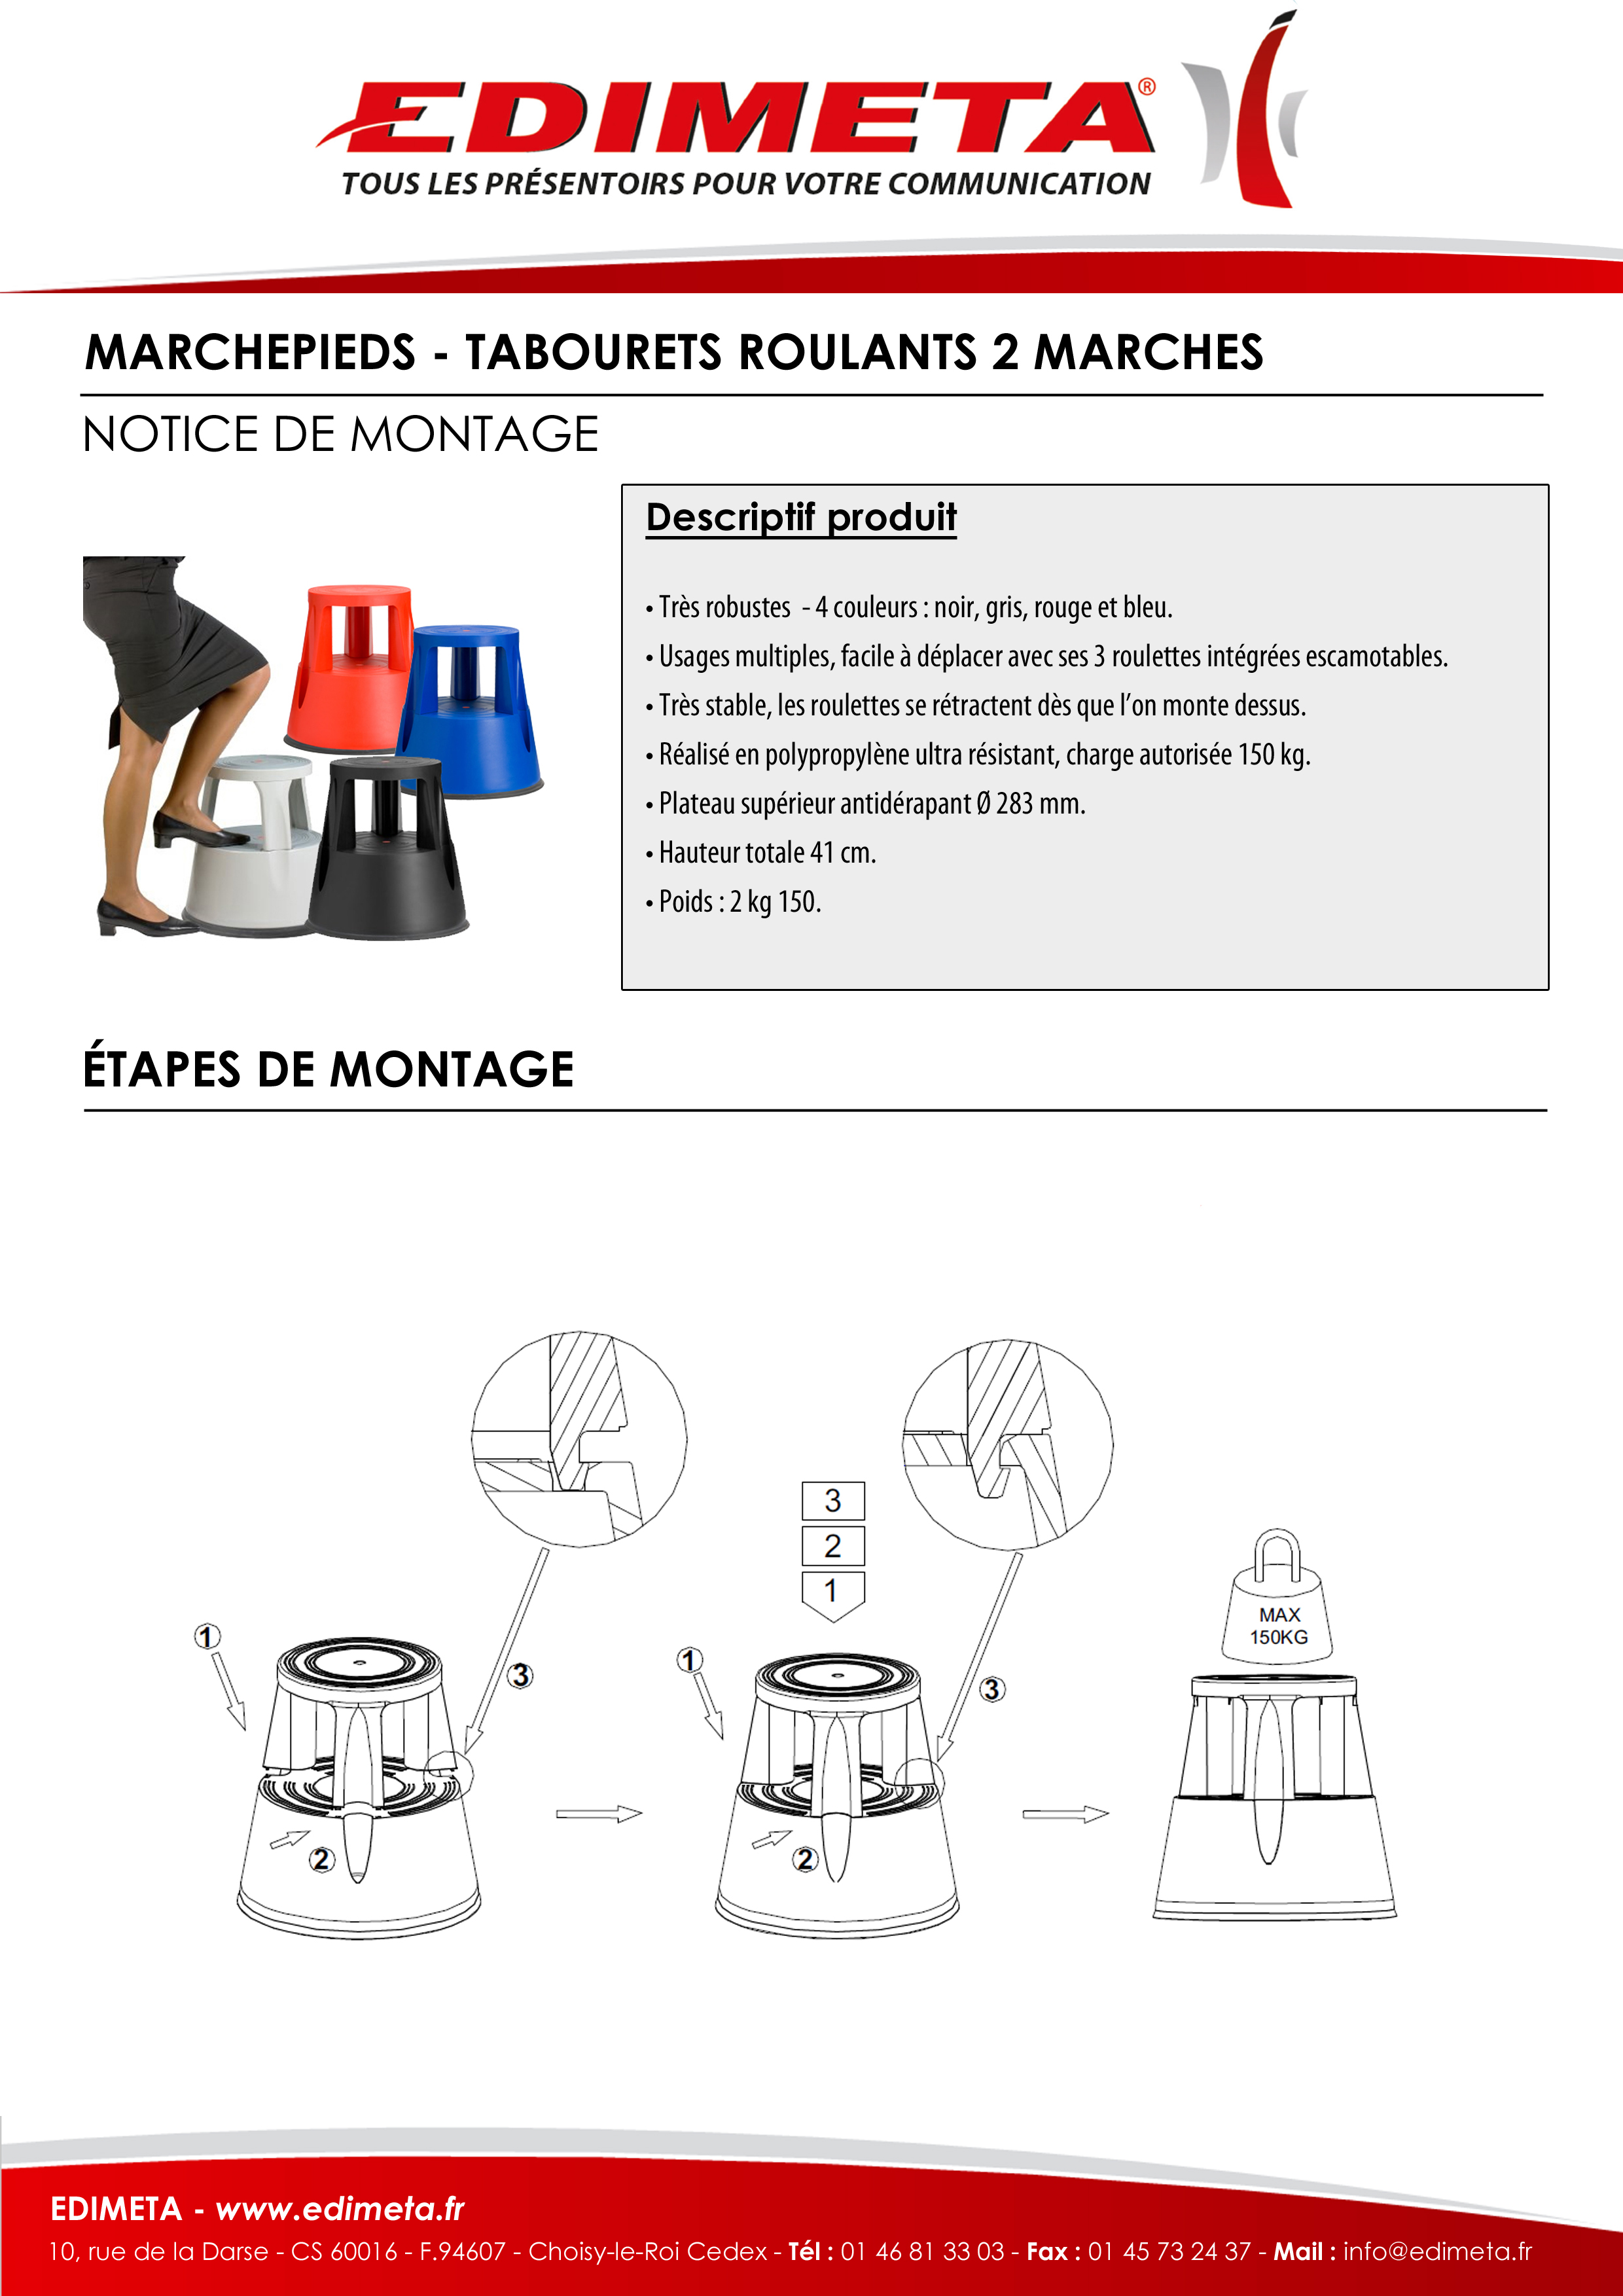 NOTICE DE MONTAGE : MARCHEPIEDS - TABOURETS ROULANTS 2 MARCHES